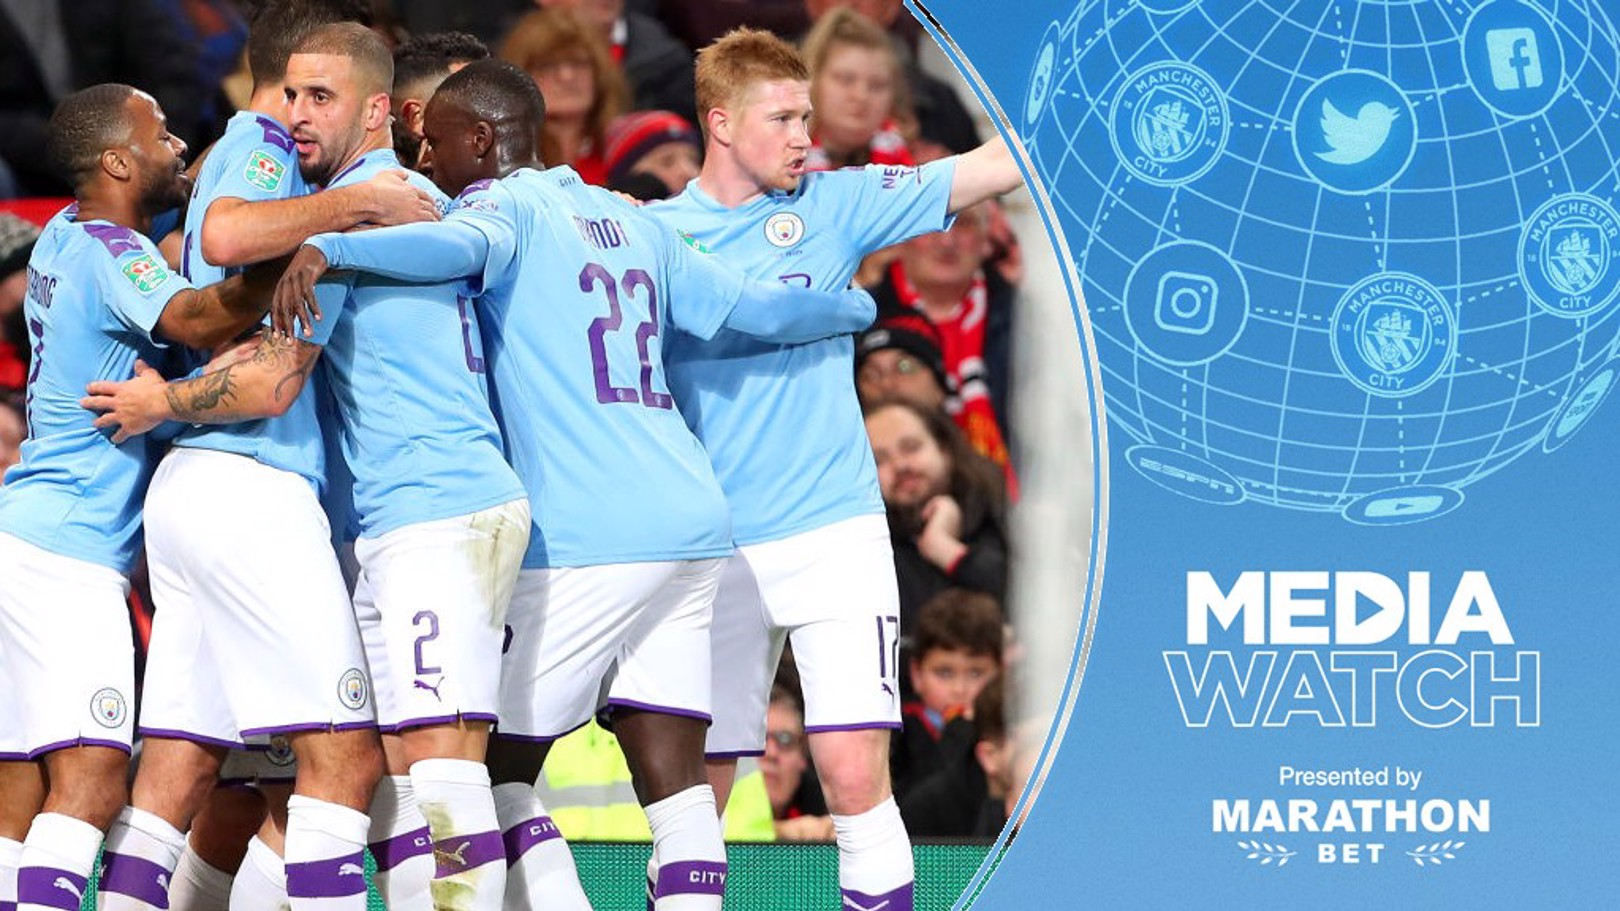 MEDIA WATCH: City have been widely praised for our 3-1 victory over Manchester United.